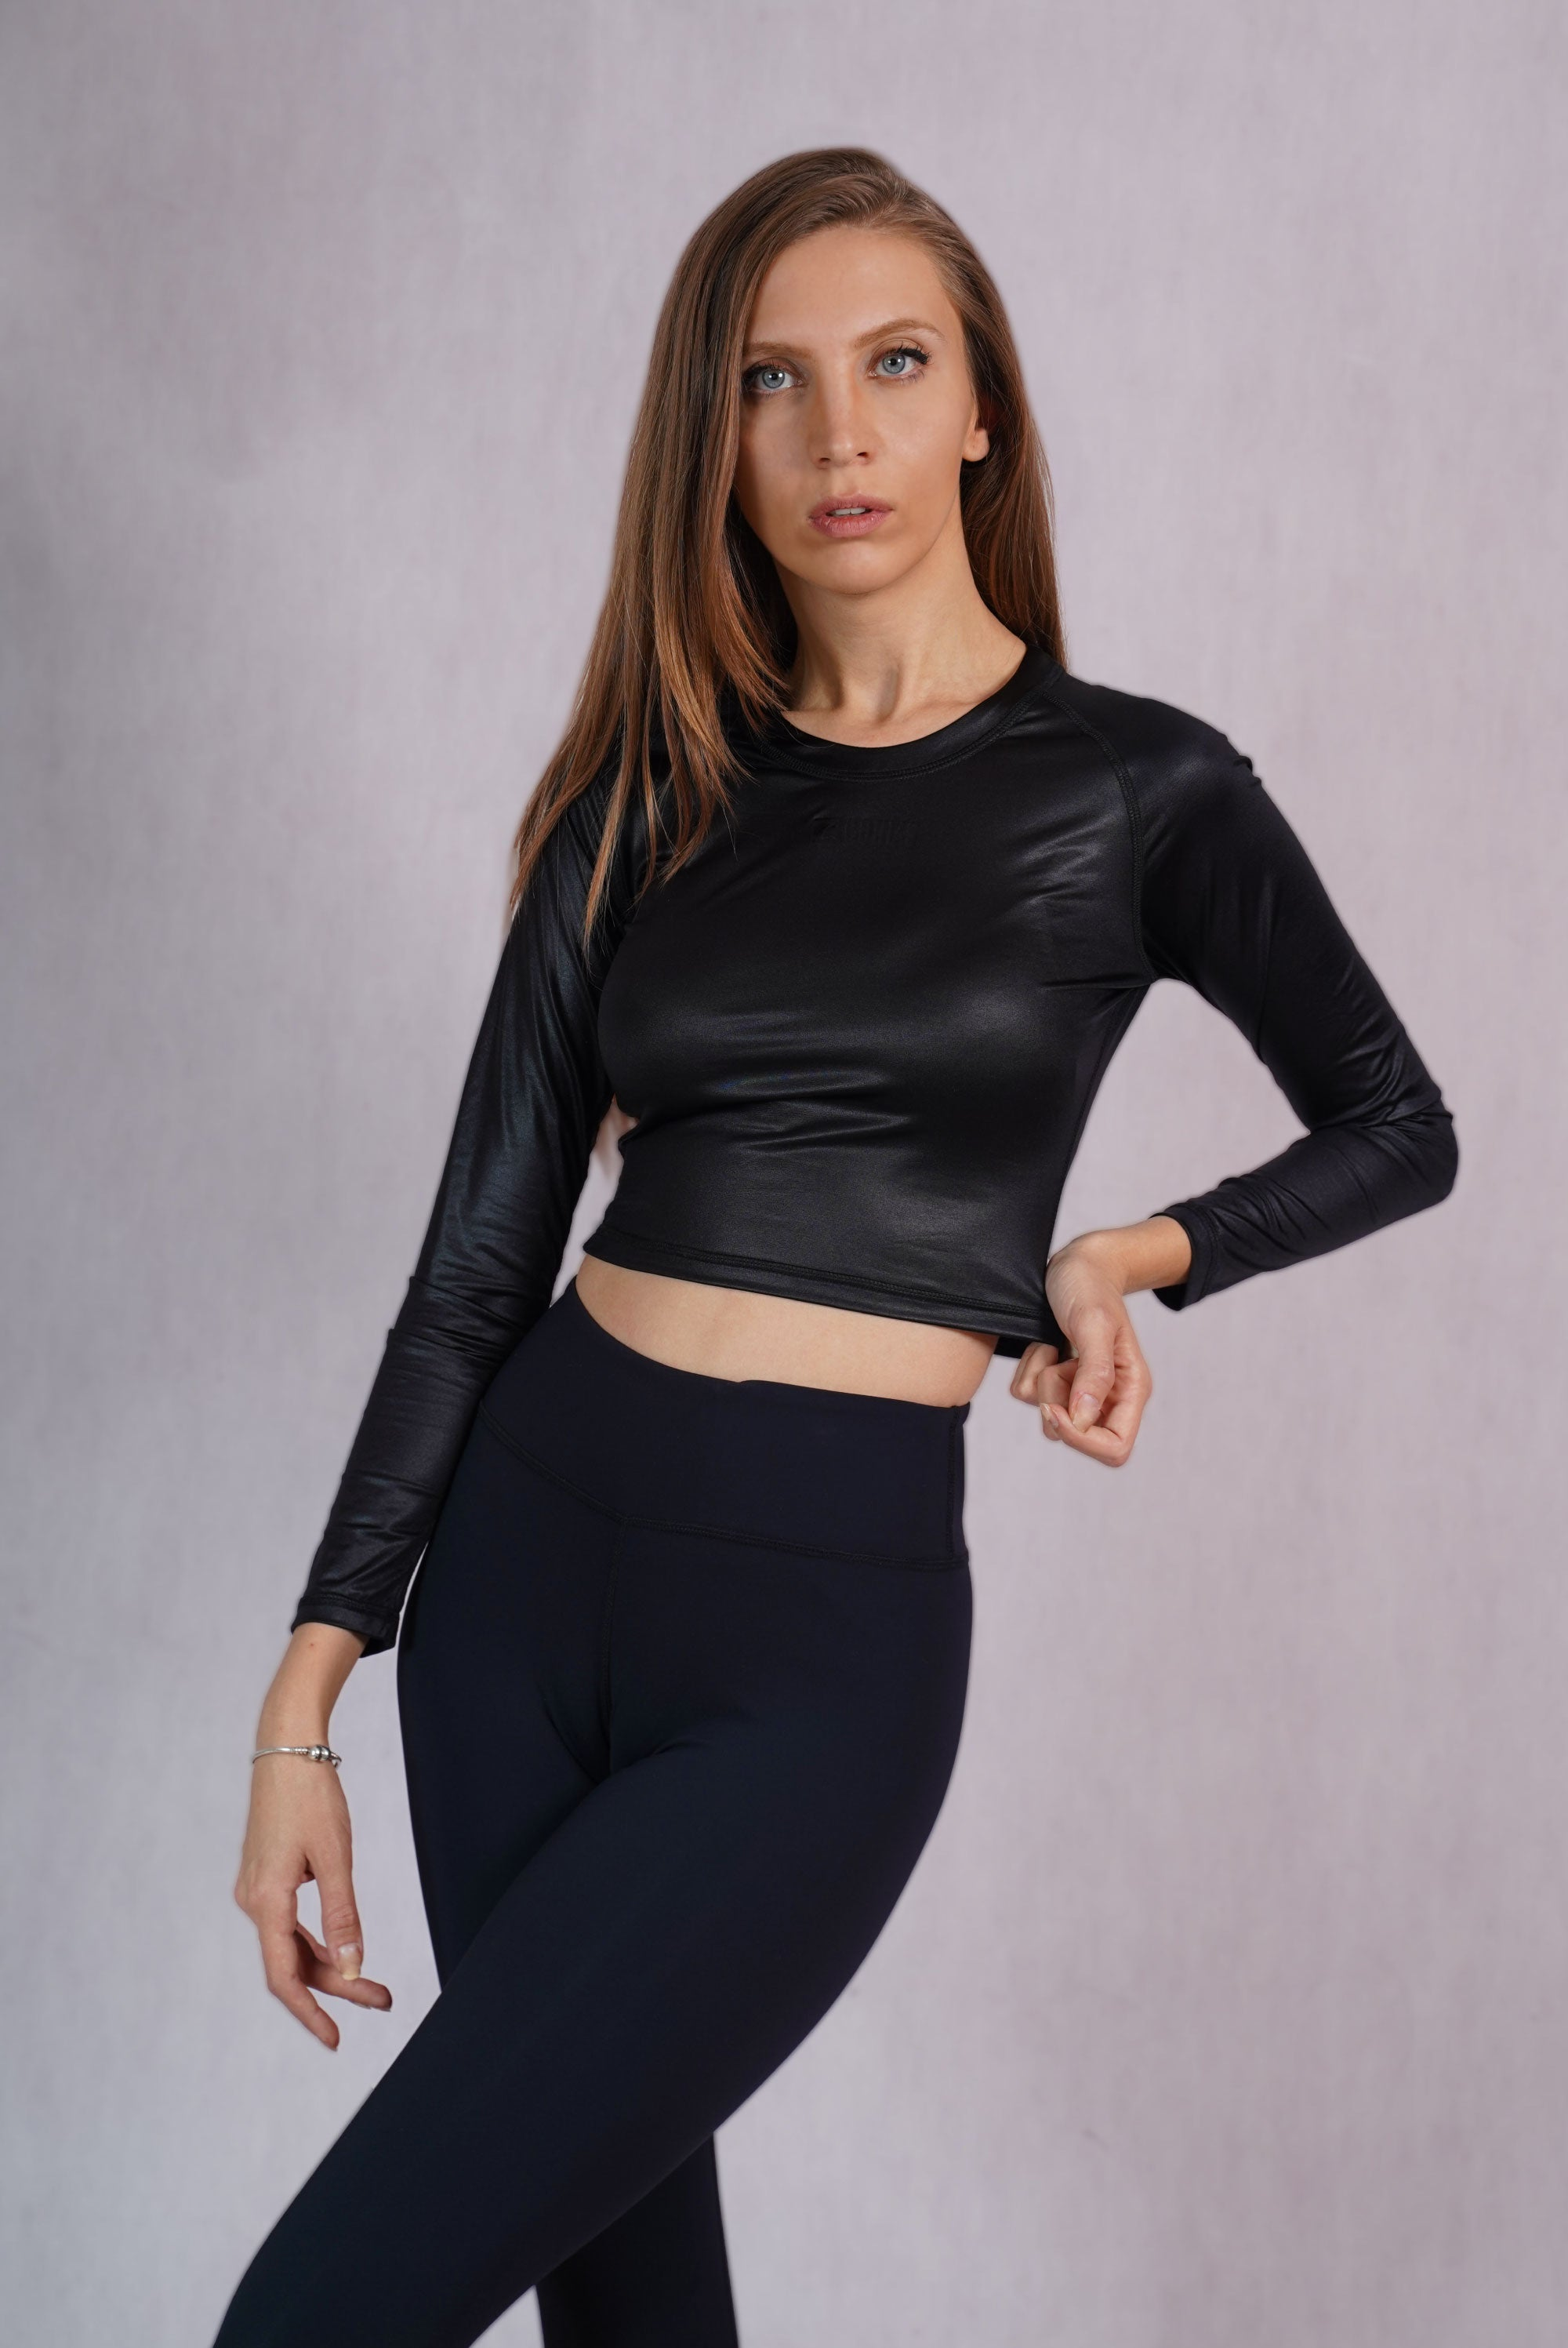 Glossy Black Slim Fit Crop Top -  C142015